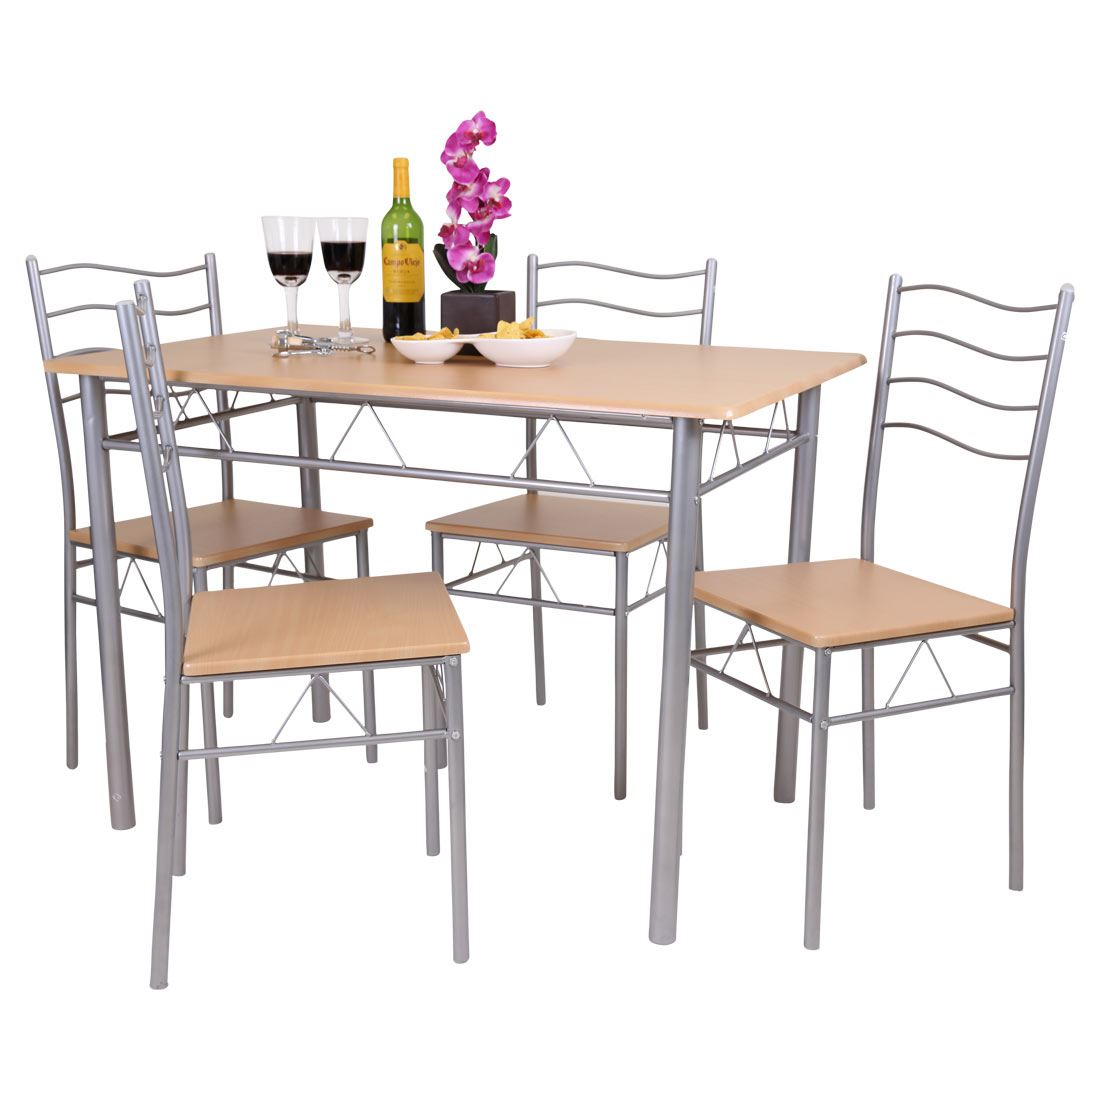 45 Wood Kitchen Tables And Chairs Sets Kitchen Chairs: FLORIDA 5 PIECE DINING TABLE AND 4 CHAIR SET. BREAKFAST